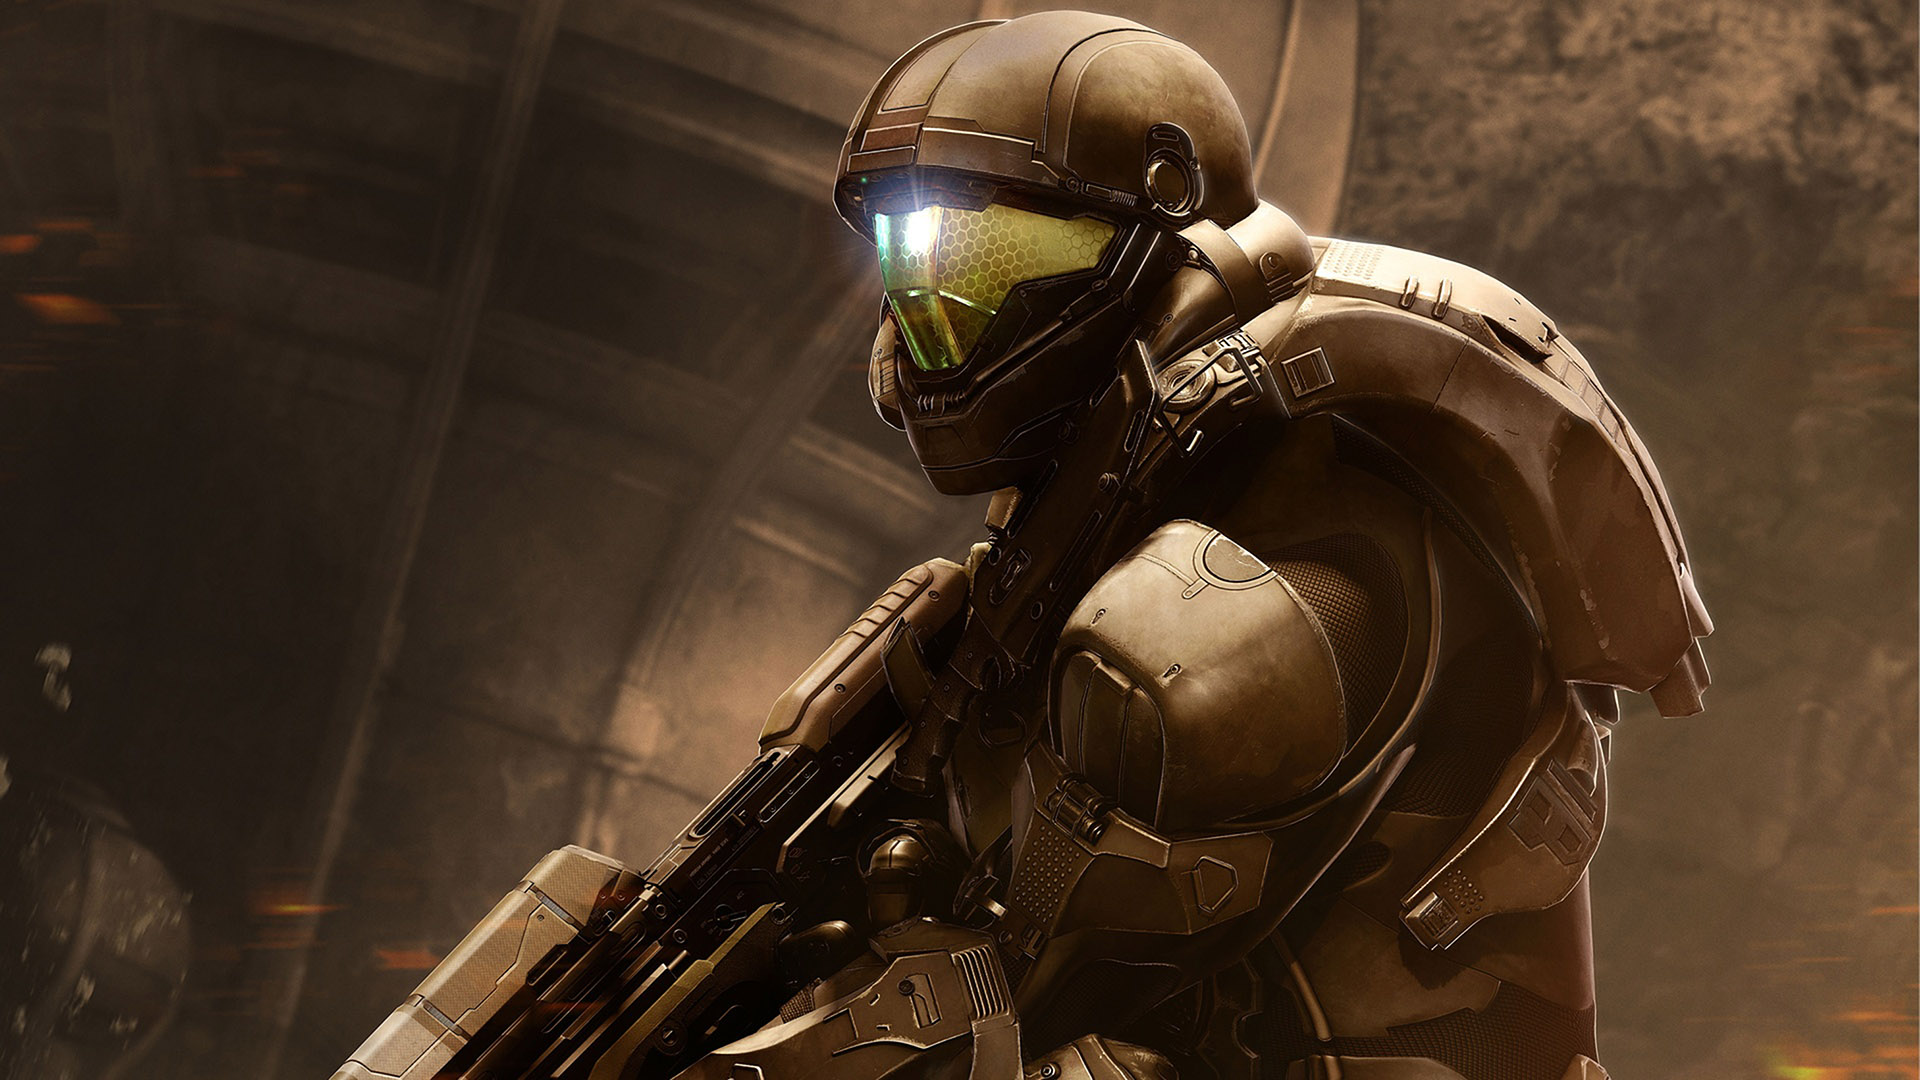 HD Background Halo 5 Guardians Game Buck Shooter Robot Wallpaper 1920x1080